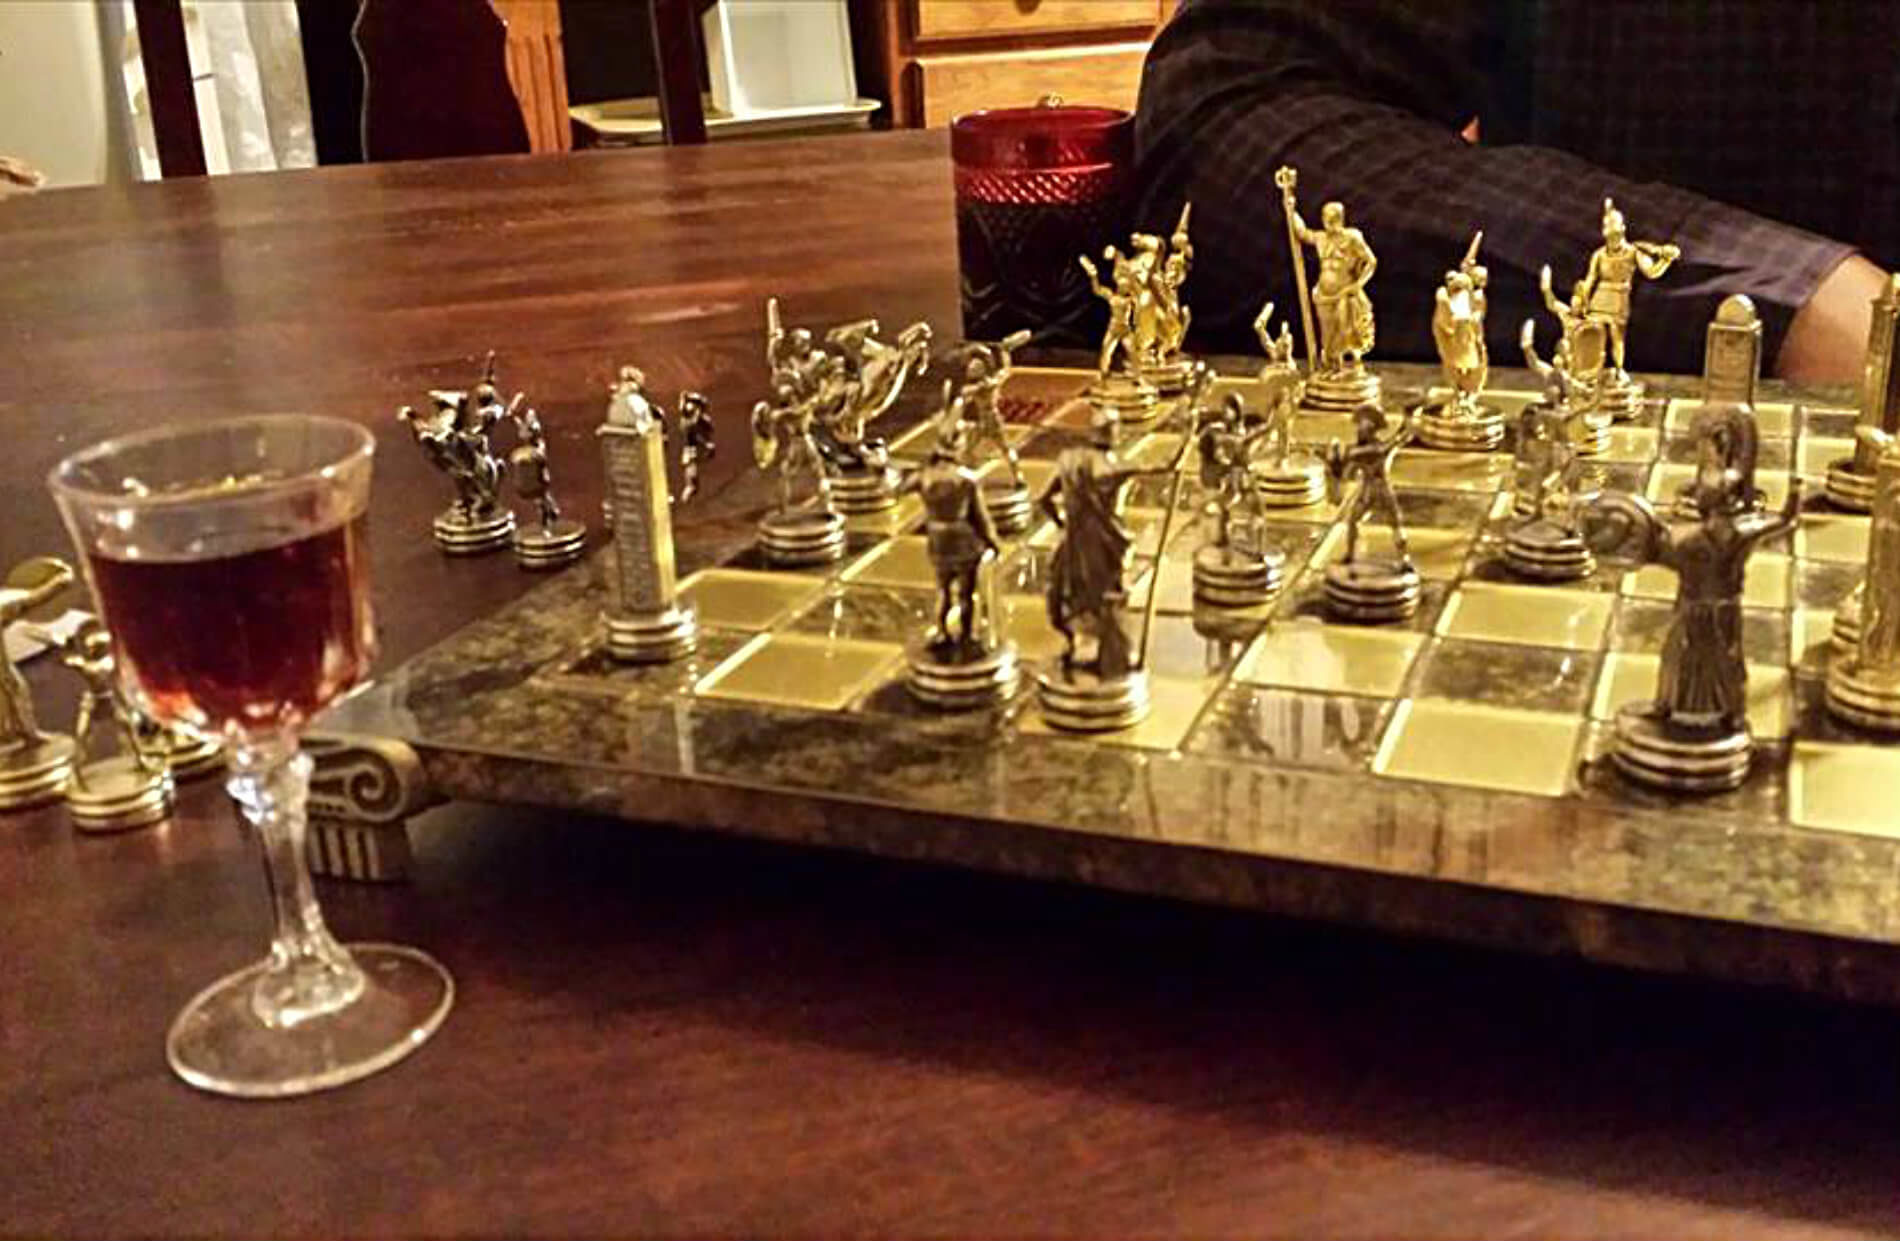 Beautiful chess board set with silver chess pieces on glossy wood table